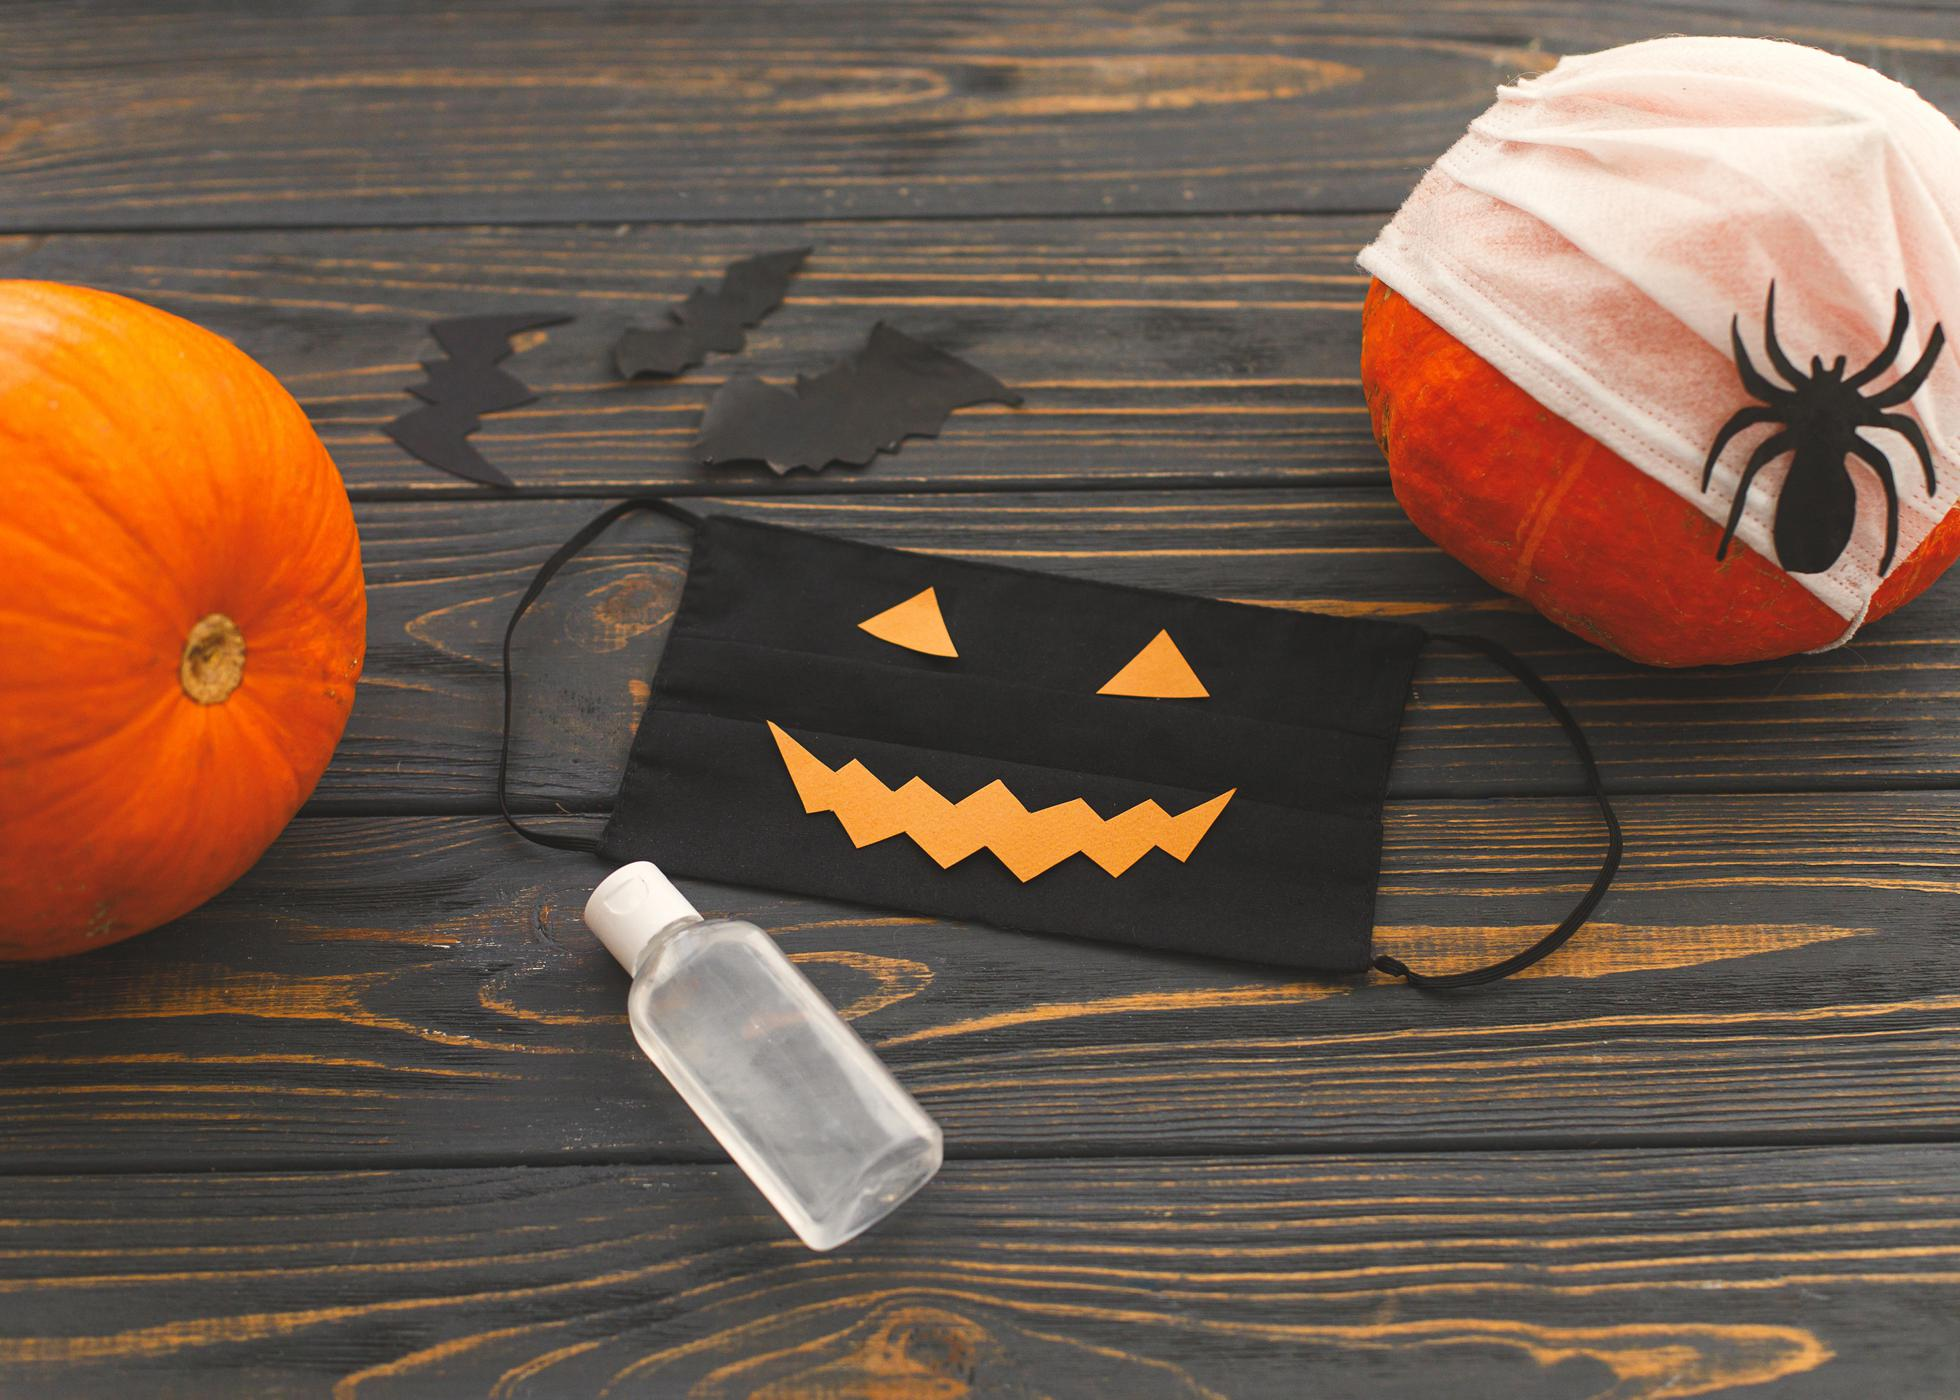 A black jack-o-lantern mask, bottle of sanitizer, and two pumpkins on a wooden backdrop.